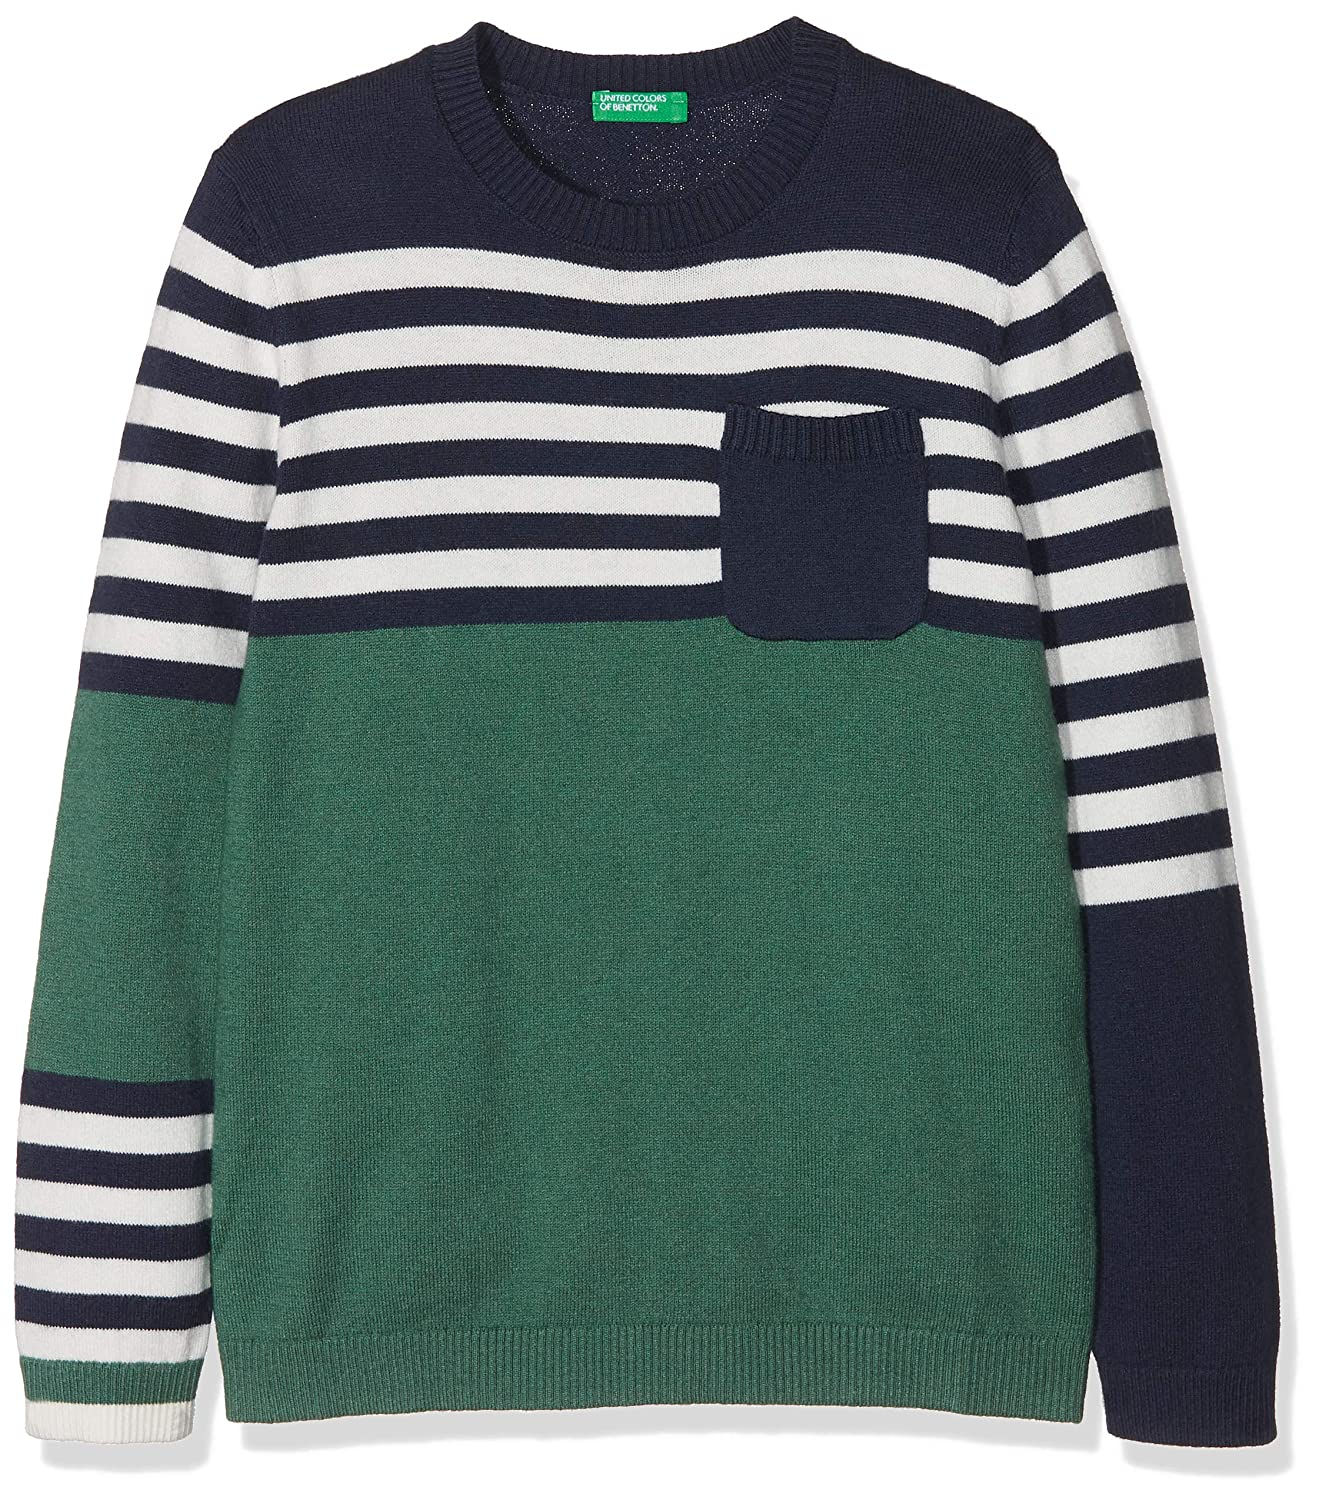 United Colors of Benetton Sweater L/S, Sudadera para Niños: Amazon.es: Ropa y accesorios